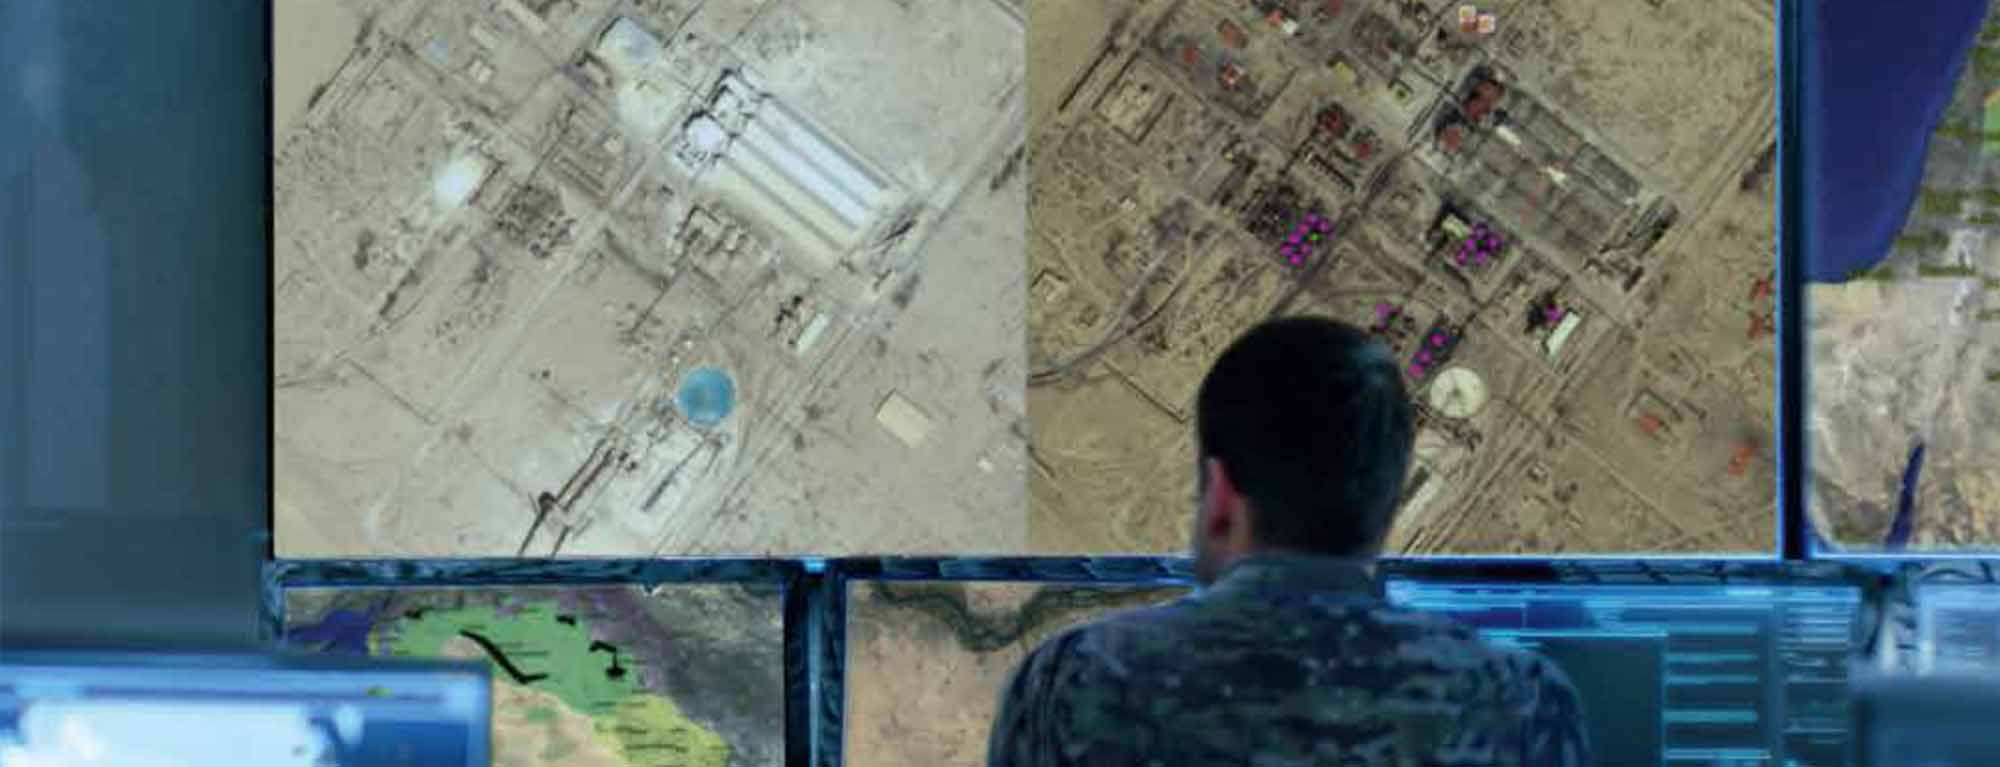 Military mission planning and operation